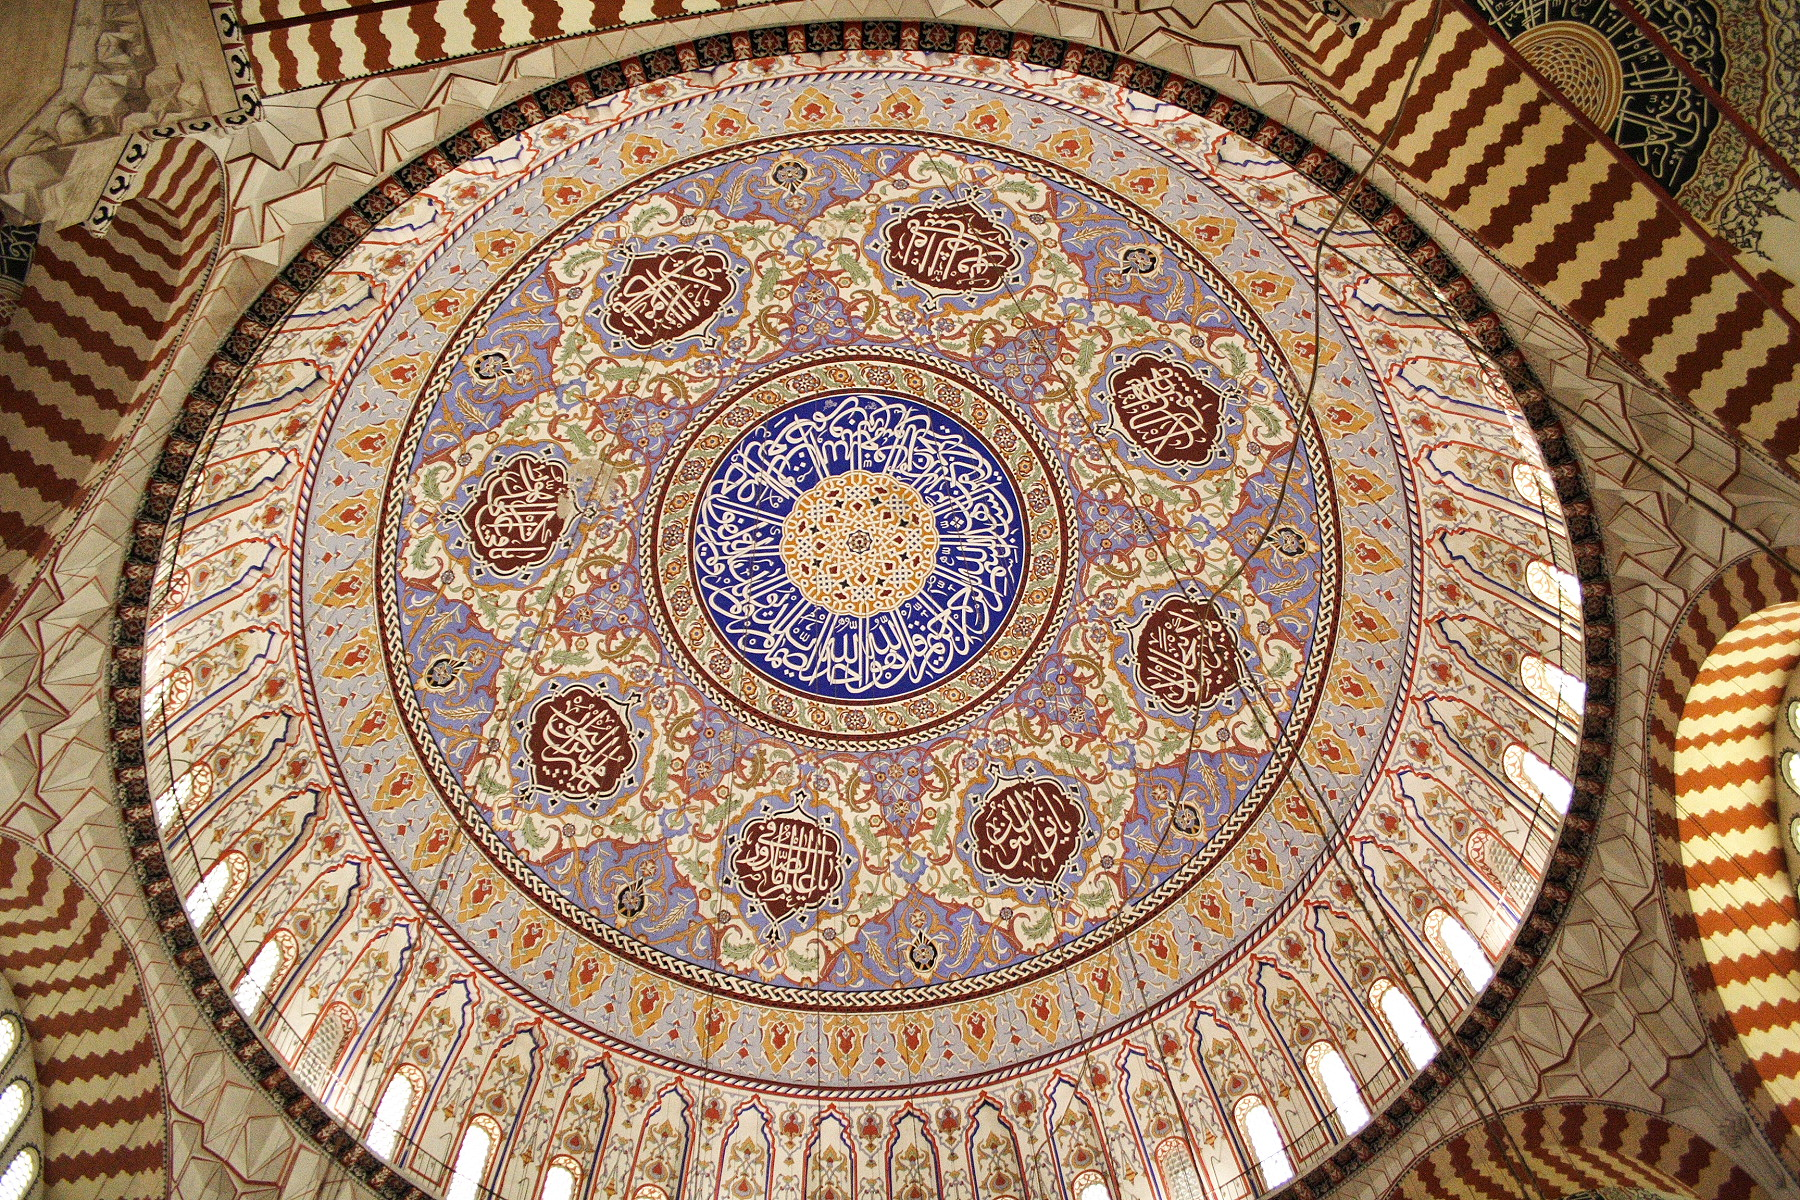 http://upload.wikimedia.org/wikipedia/commons/3/31/Selimiye_Mosque%2C_Dome.jpg